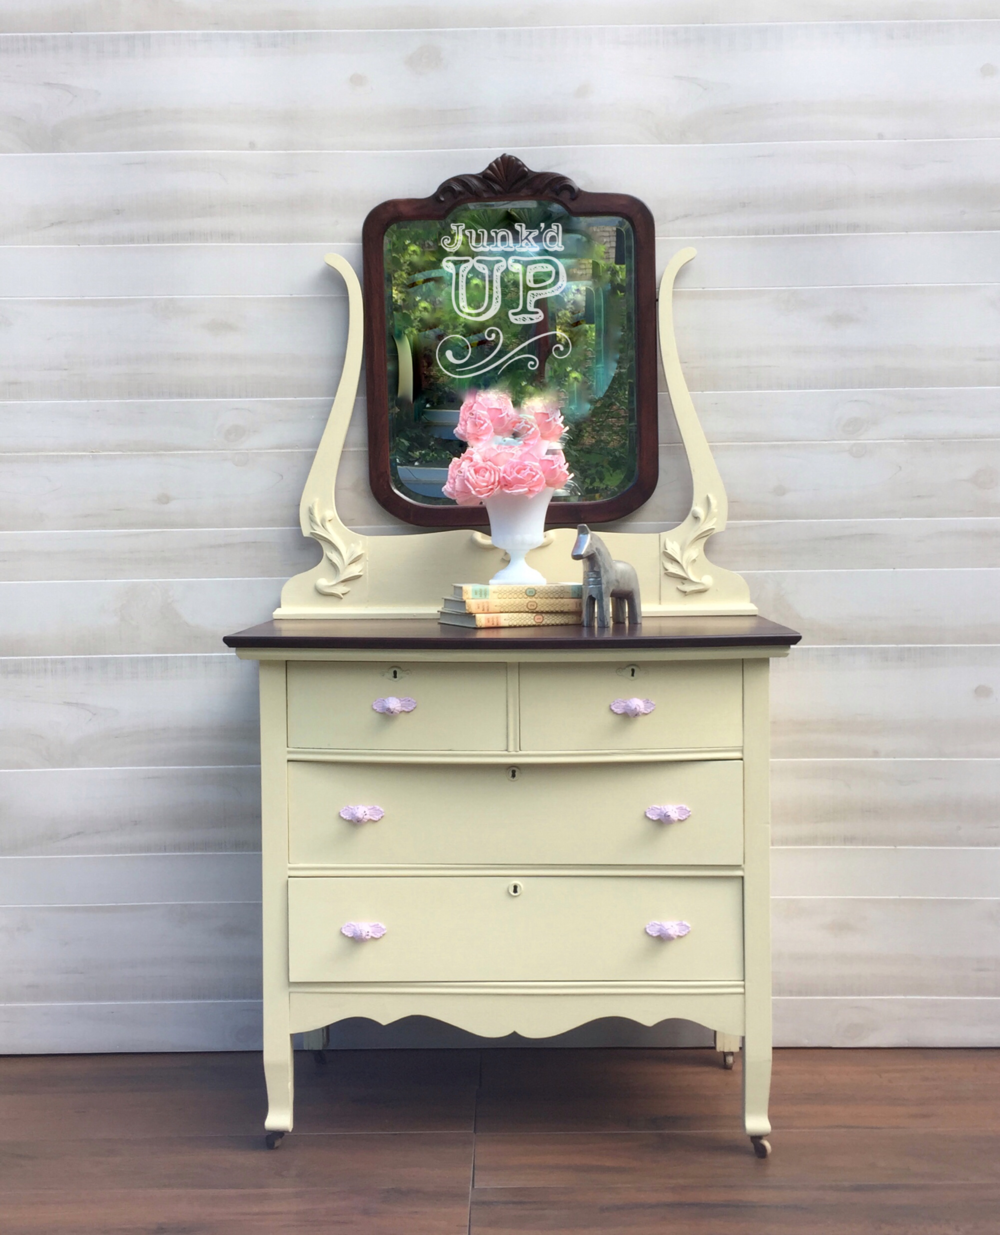 Nursery Dreams - My client trusted me with a family heirloom. She requested a pale yellow paint complemented by a cherry stained top and mirror. After making adjustments for new hardware and fresh paint, we delivered.